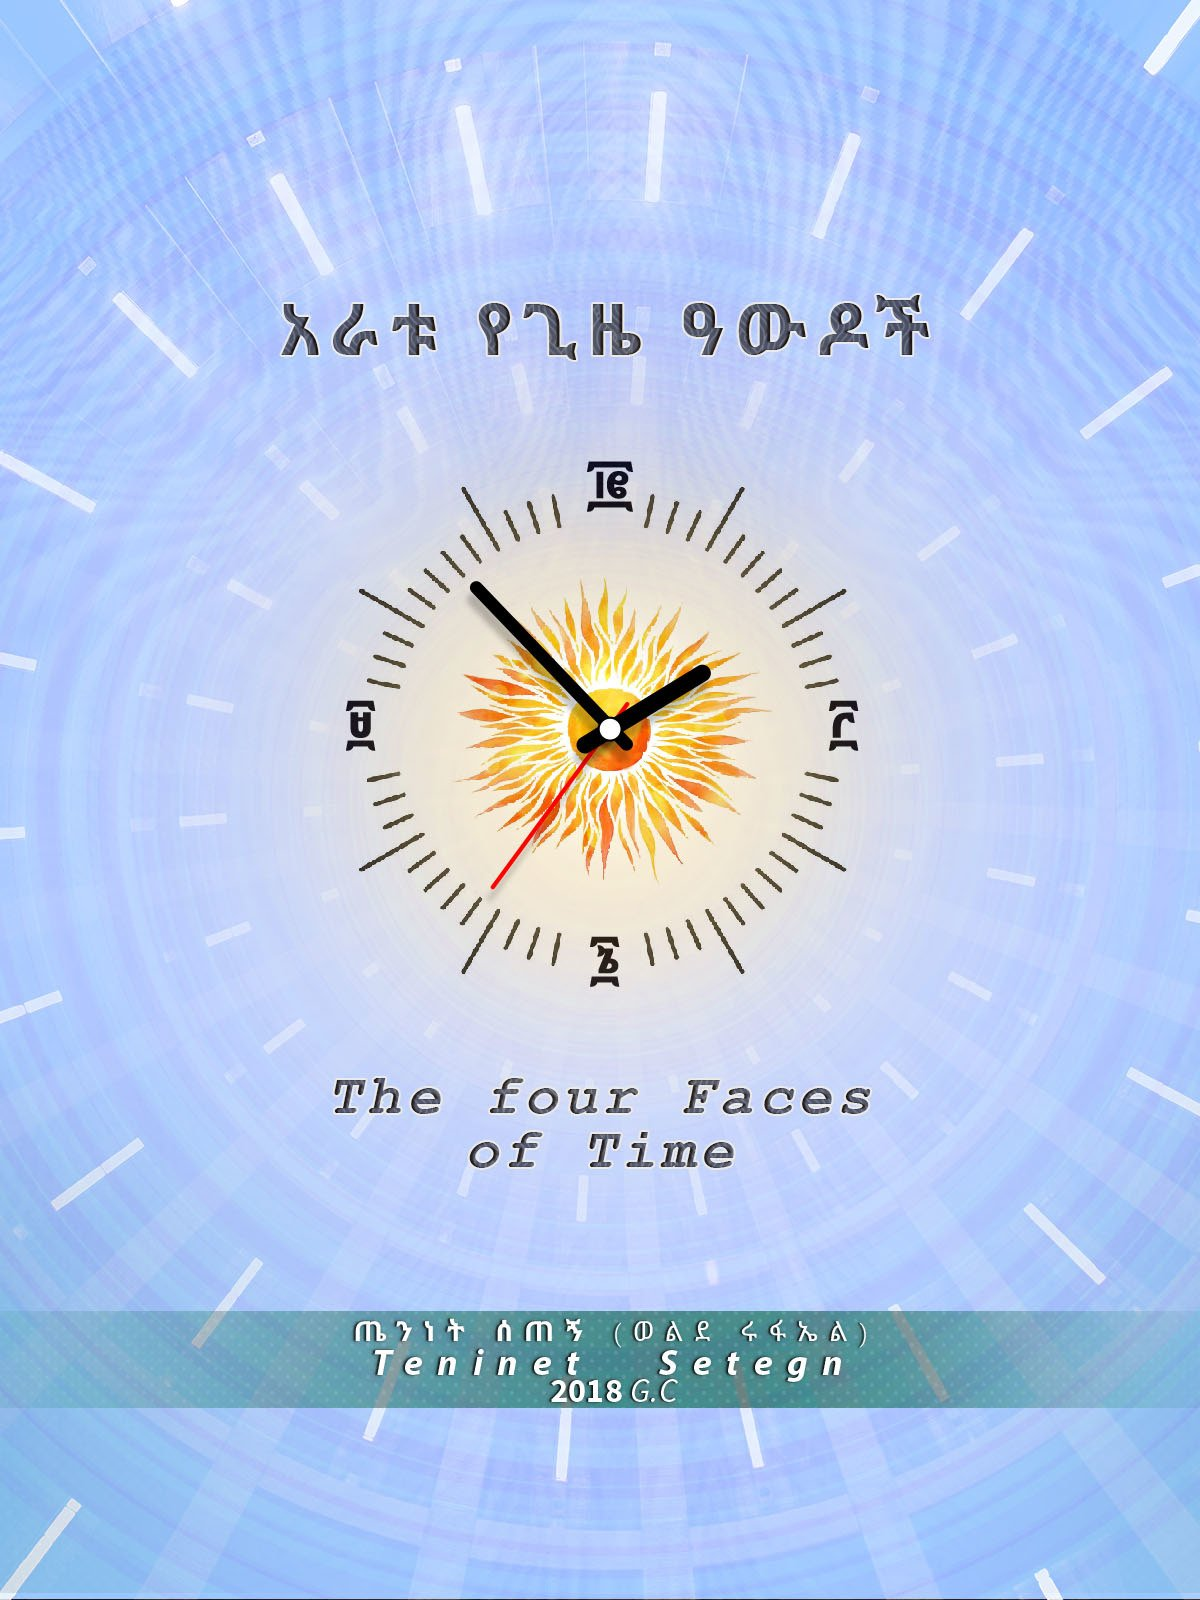 The four faces of time